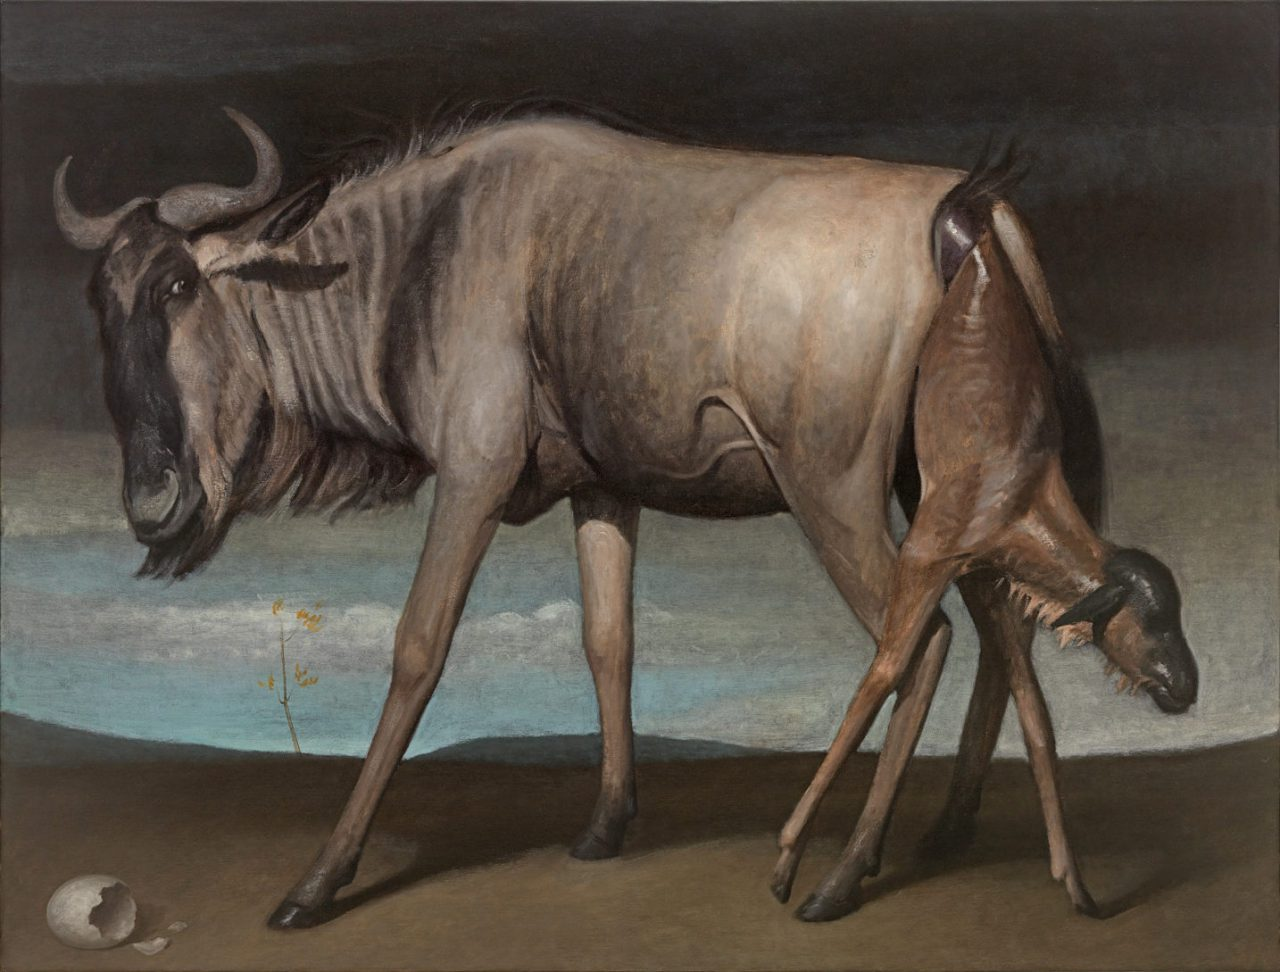 2 Gnus (Birth), Oil on Canvas,160 x 210 cm, 2016